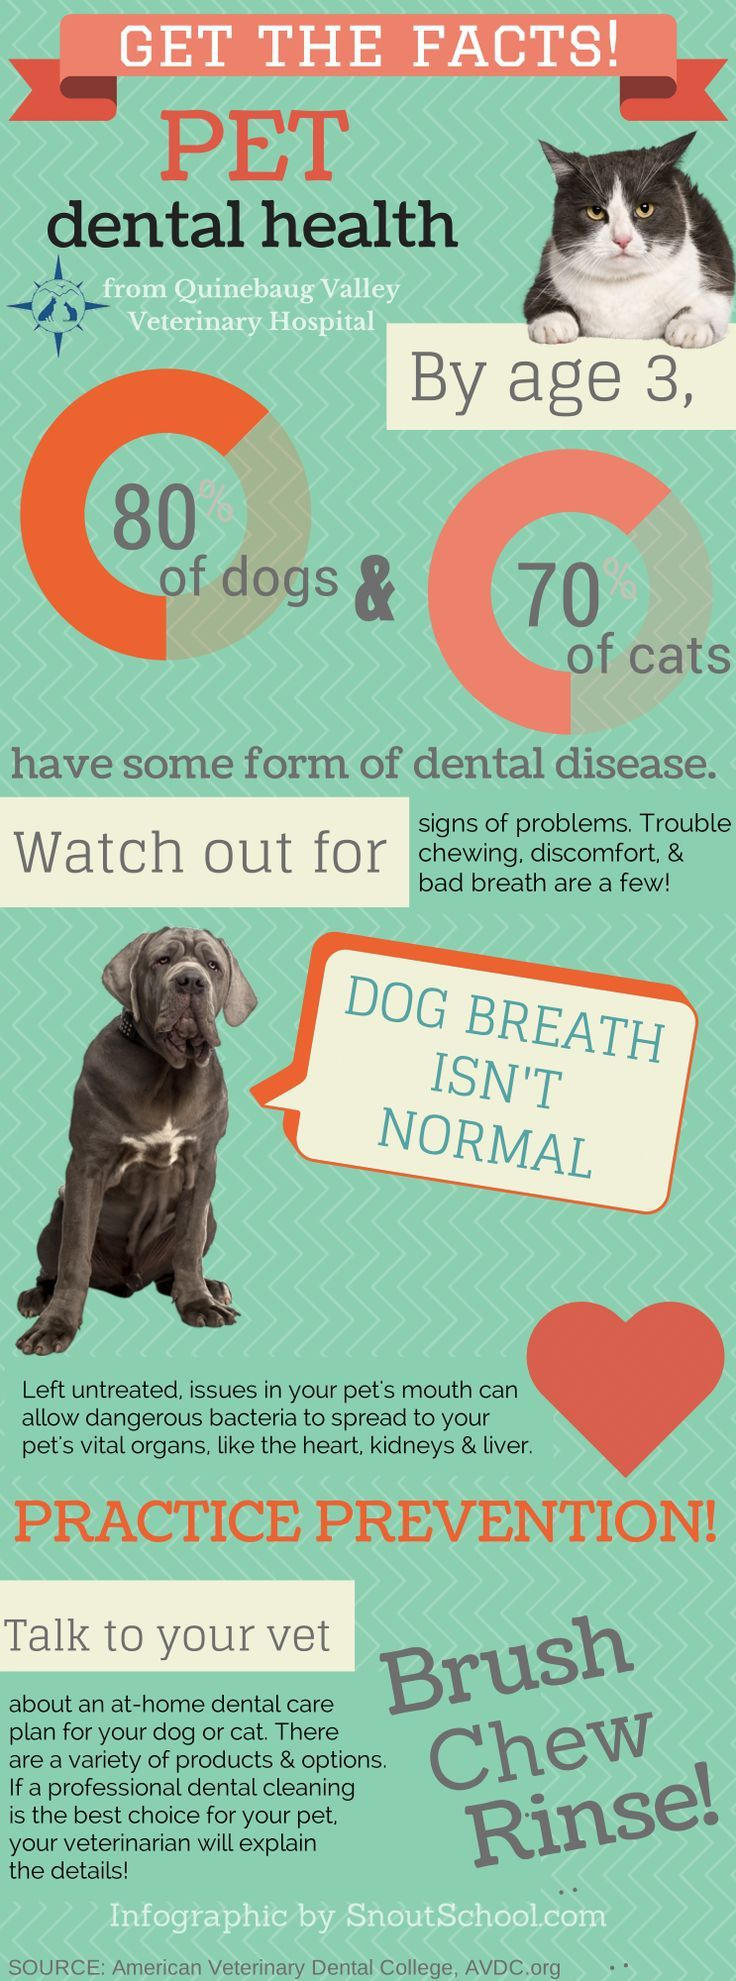 It's Pet Dental Health Month. Get the facts you need to